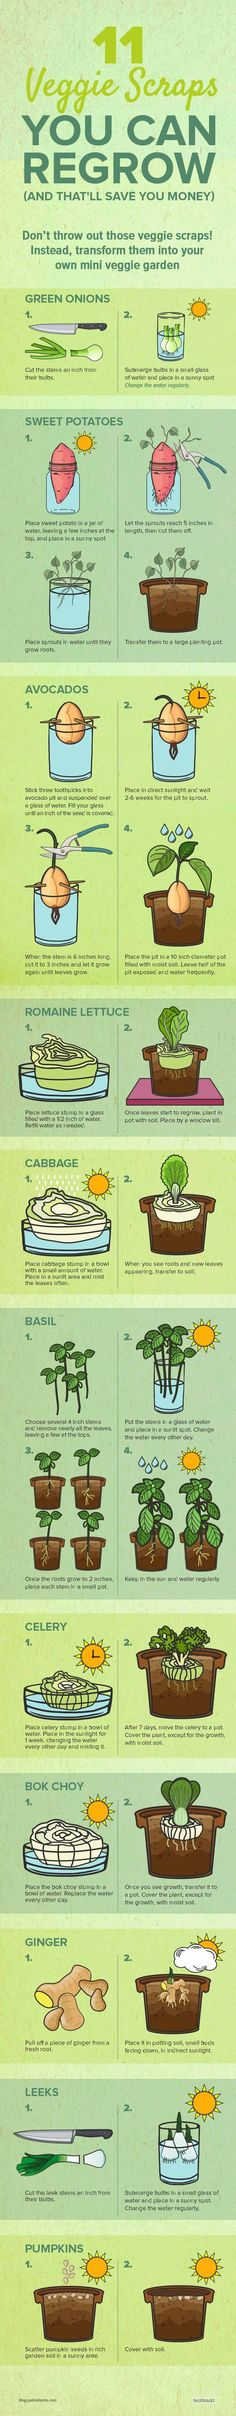 Don't throw out those veggie scraps! Turns out, you can transform them into your own mini veggie garden. Here's how: http://paleo.co/veggiescrapsregrow